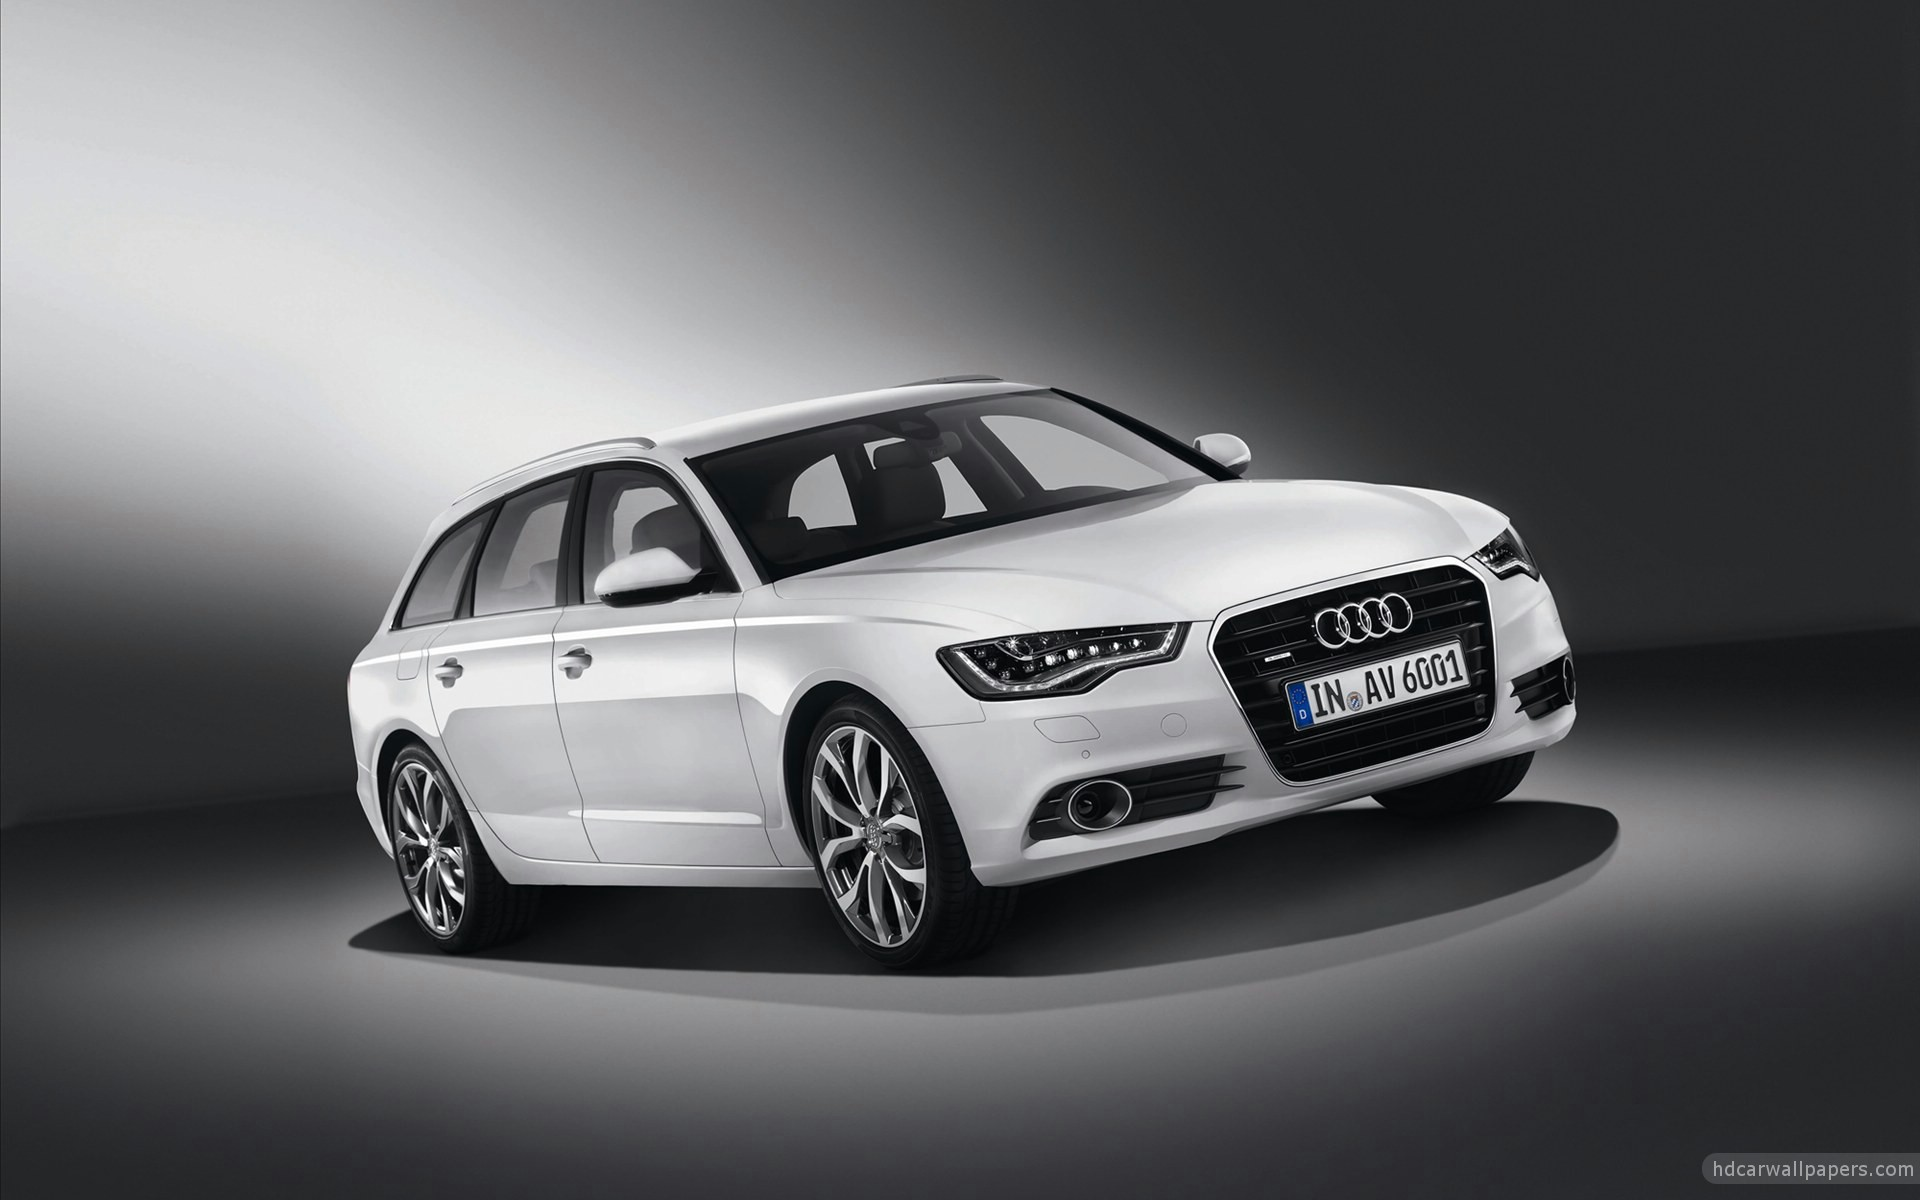 2012 Audi A6 Avant Wallpaper | HD Car Wallpapers | ID #2045